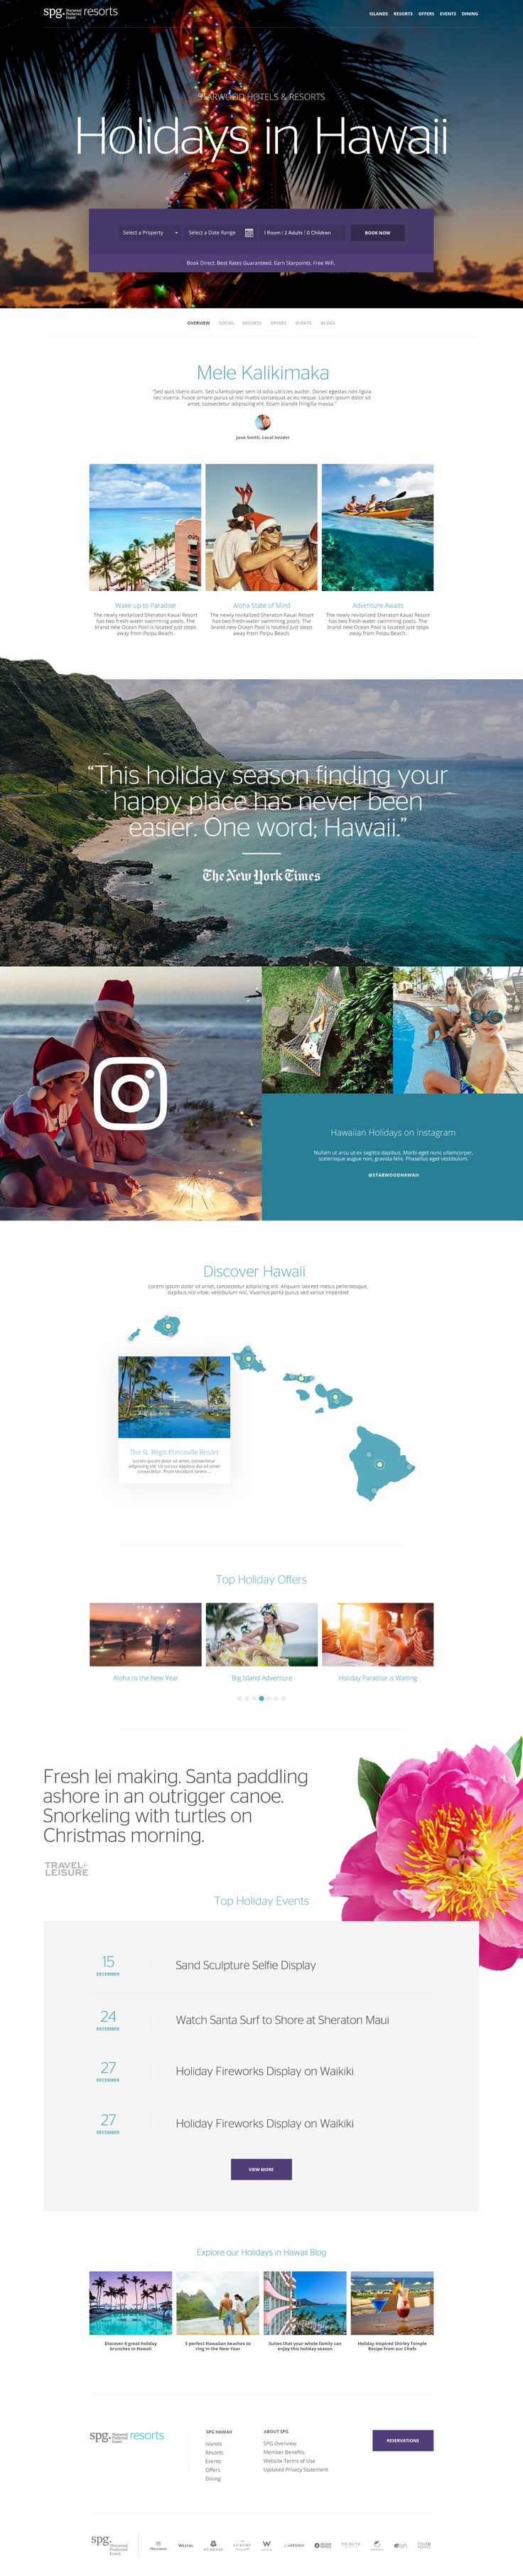 SPG Resorts Holidays in Hawaii Travel Experience Landing Page Design by Agency Dominion